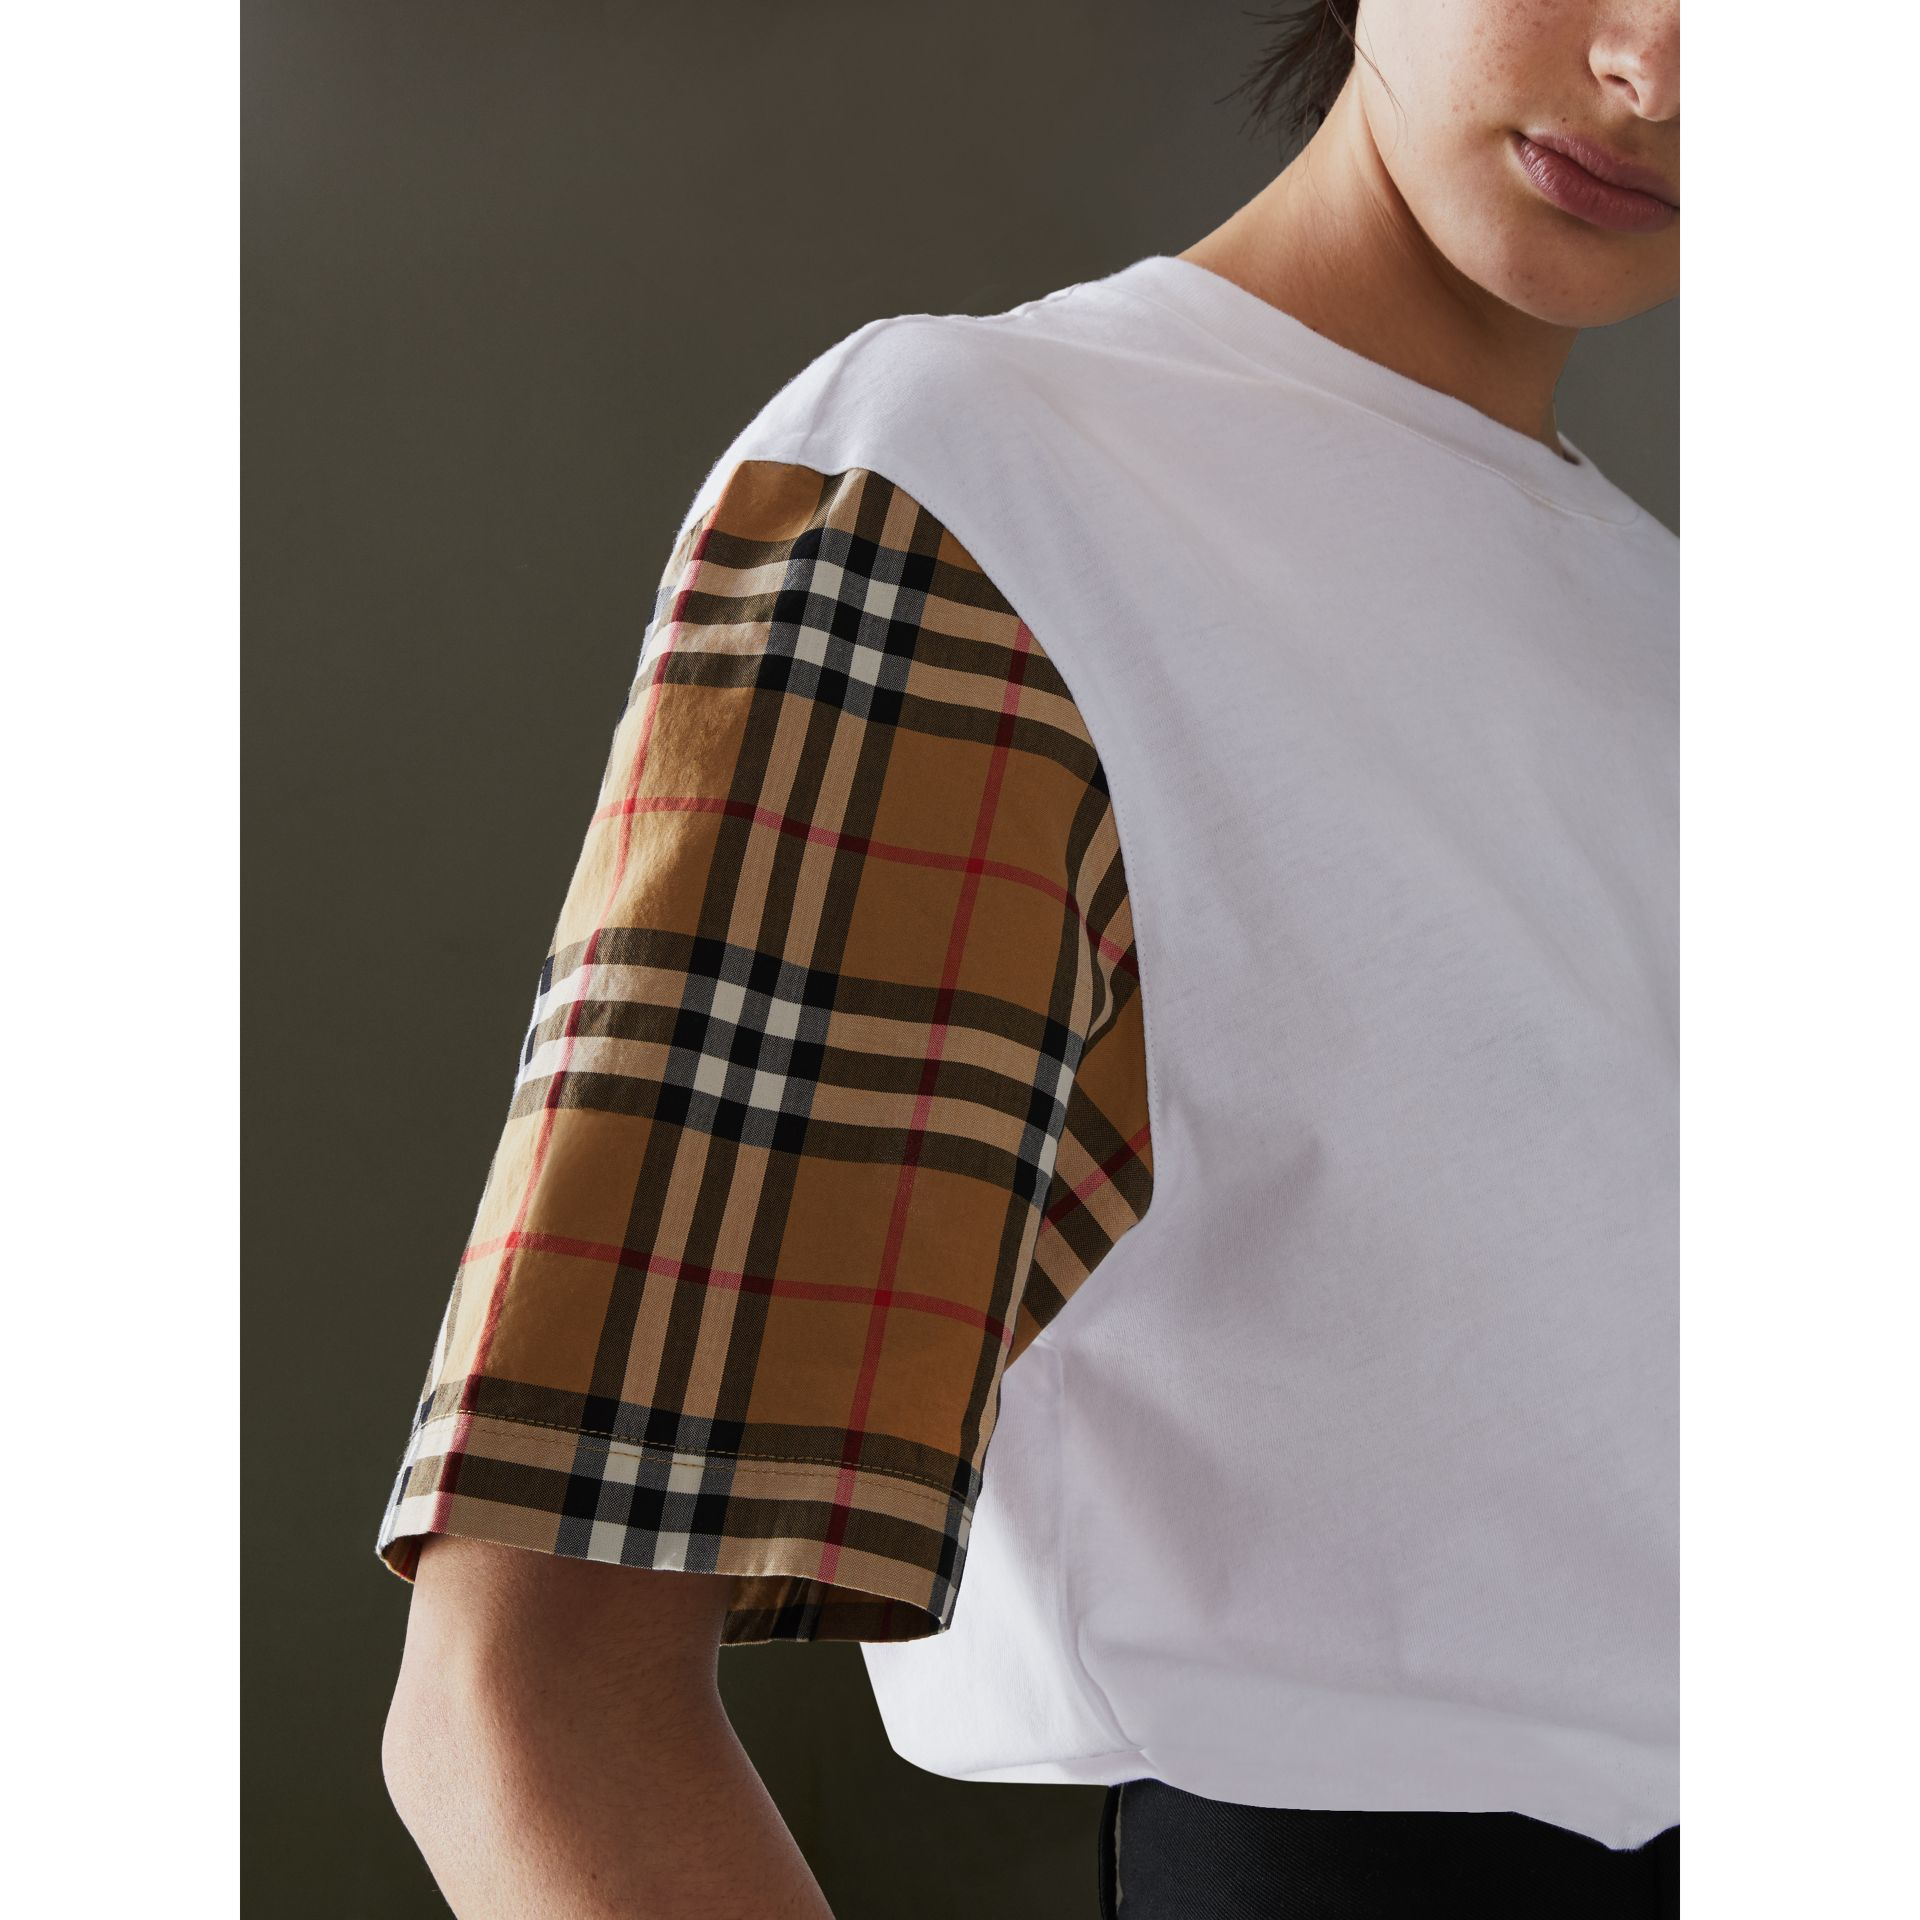 Vintage Check Sleeve Cotton T-shirt in White - Women | Burberry - gallery image 1